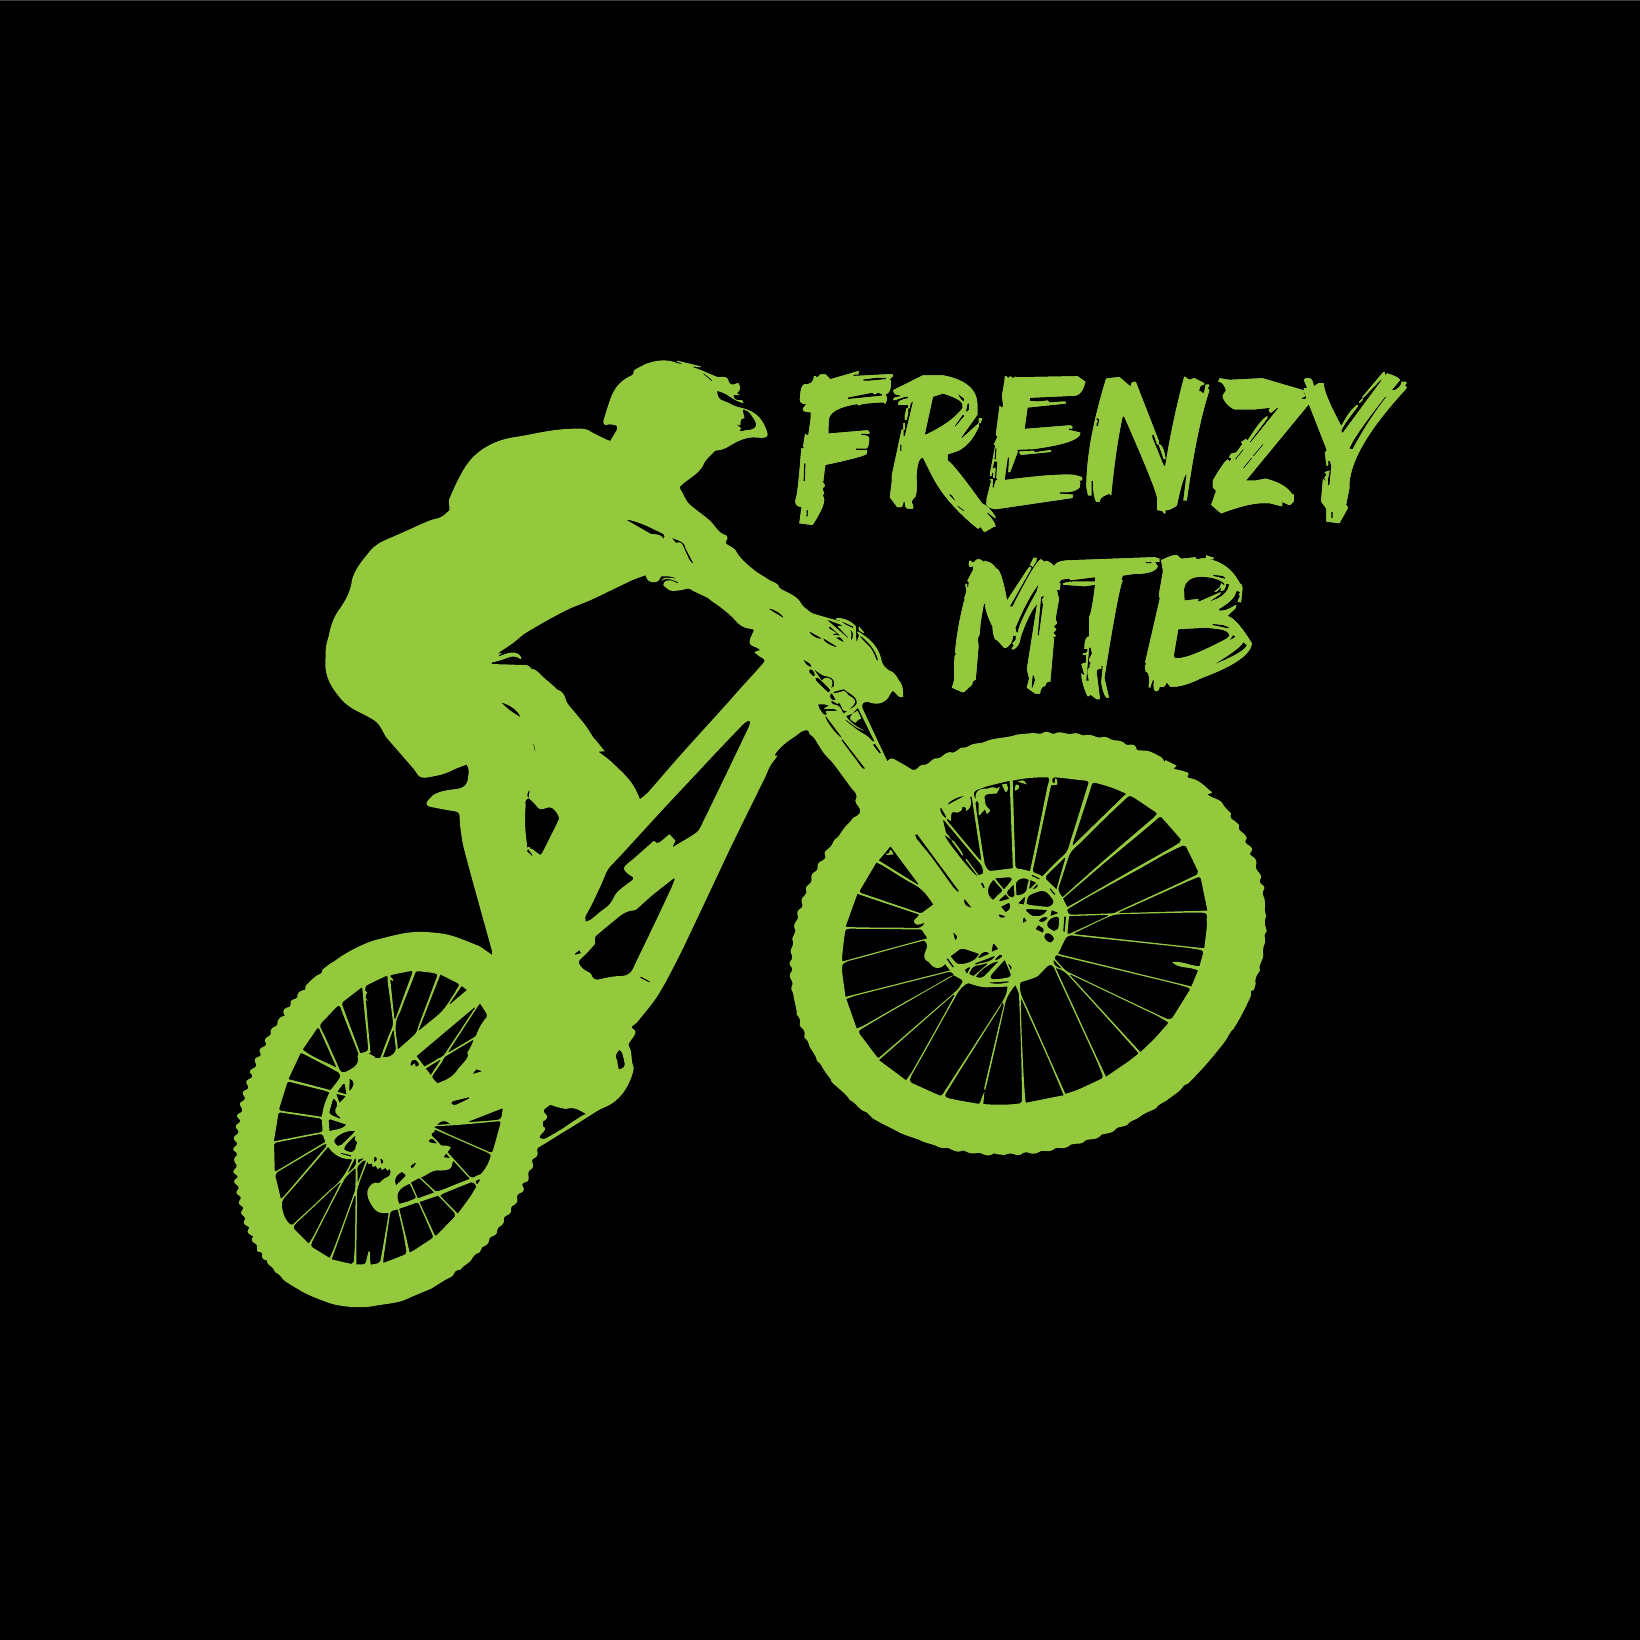 Frenzy mtb shuttle bus - Frenzy MTB is a locally owned and operated mountain bike shuttle bus servicing Toowoomba and surrounds